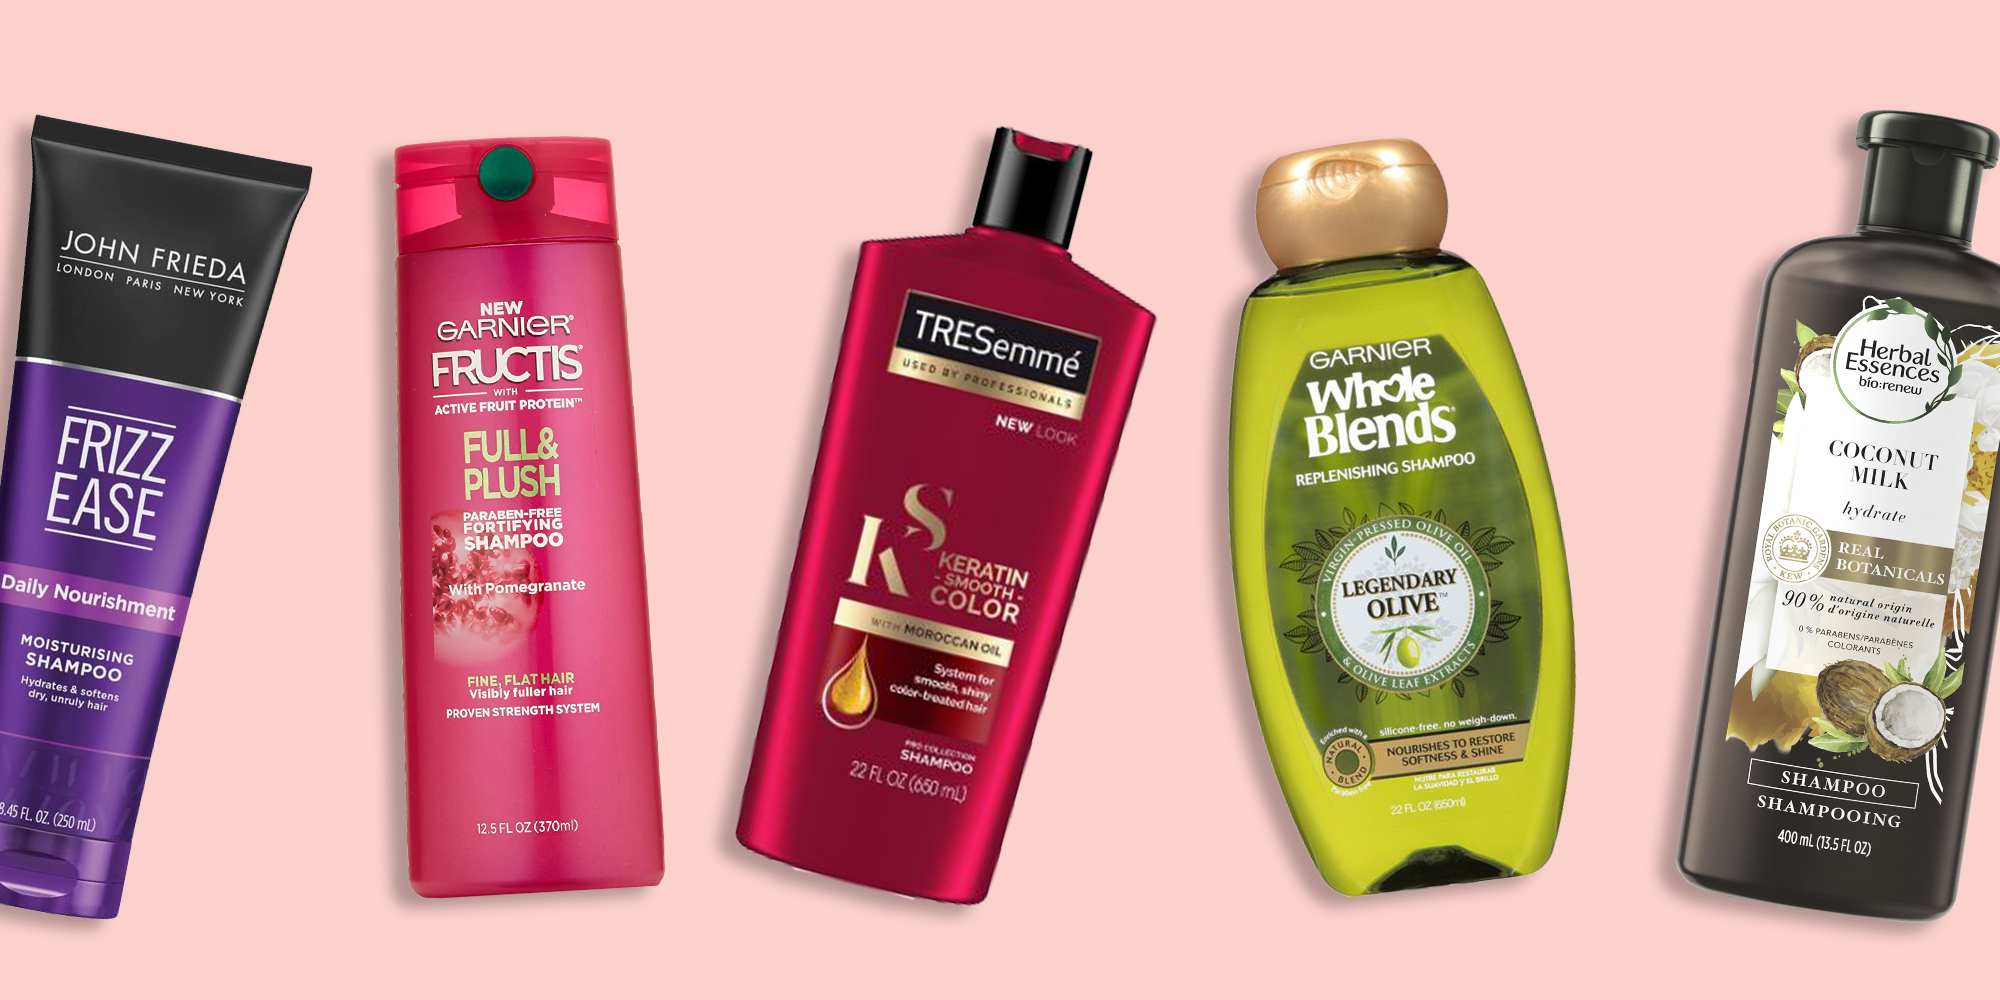 15 Best Shampoos Of 2020 Top Shampoo Brands For Every Hair Type Texture